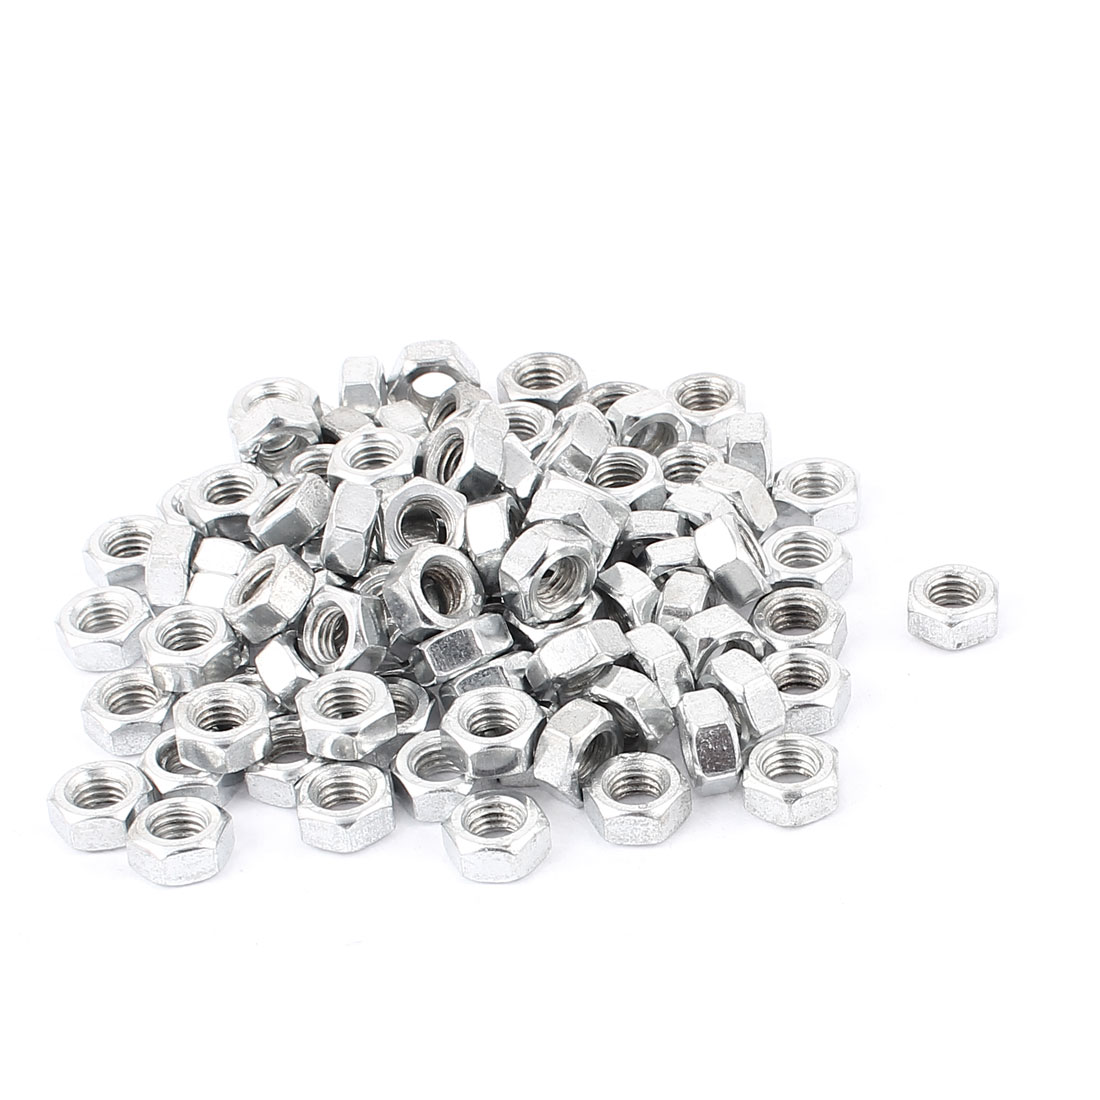 100 Pcs Metric M8 Hex Nuts Stainless Steel Fastener for Screws Bolts